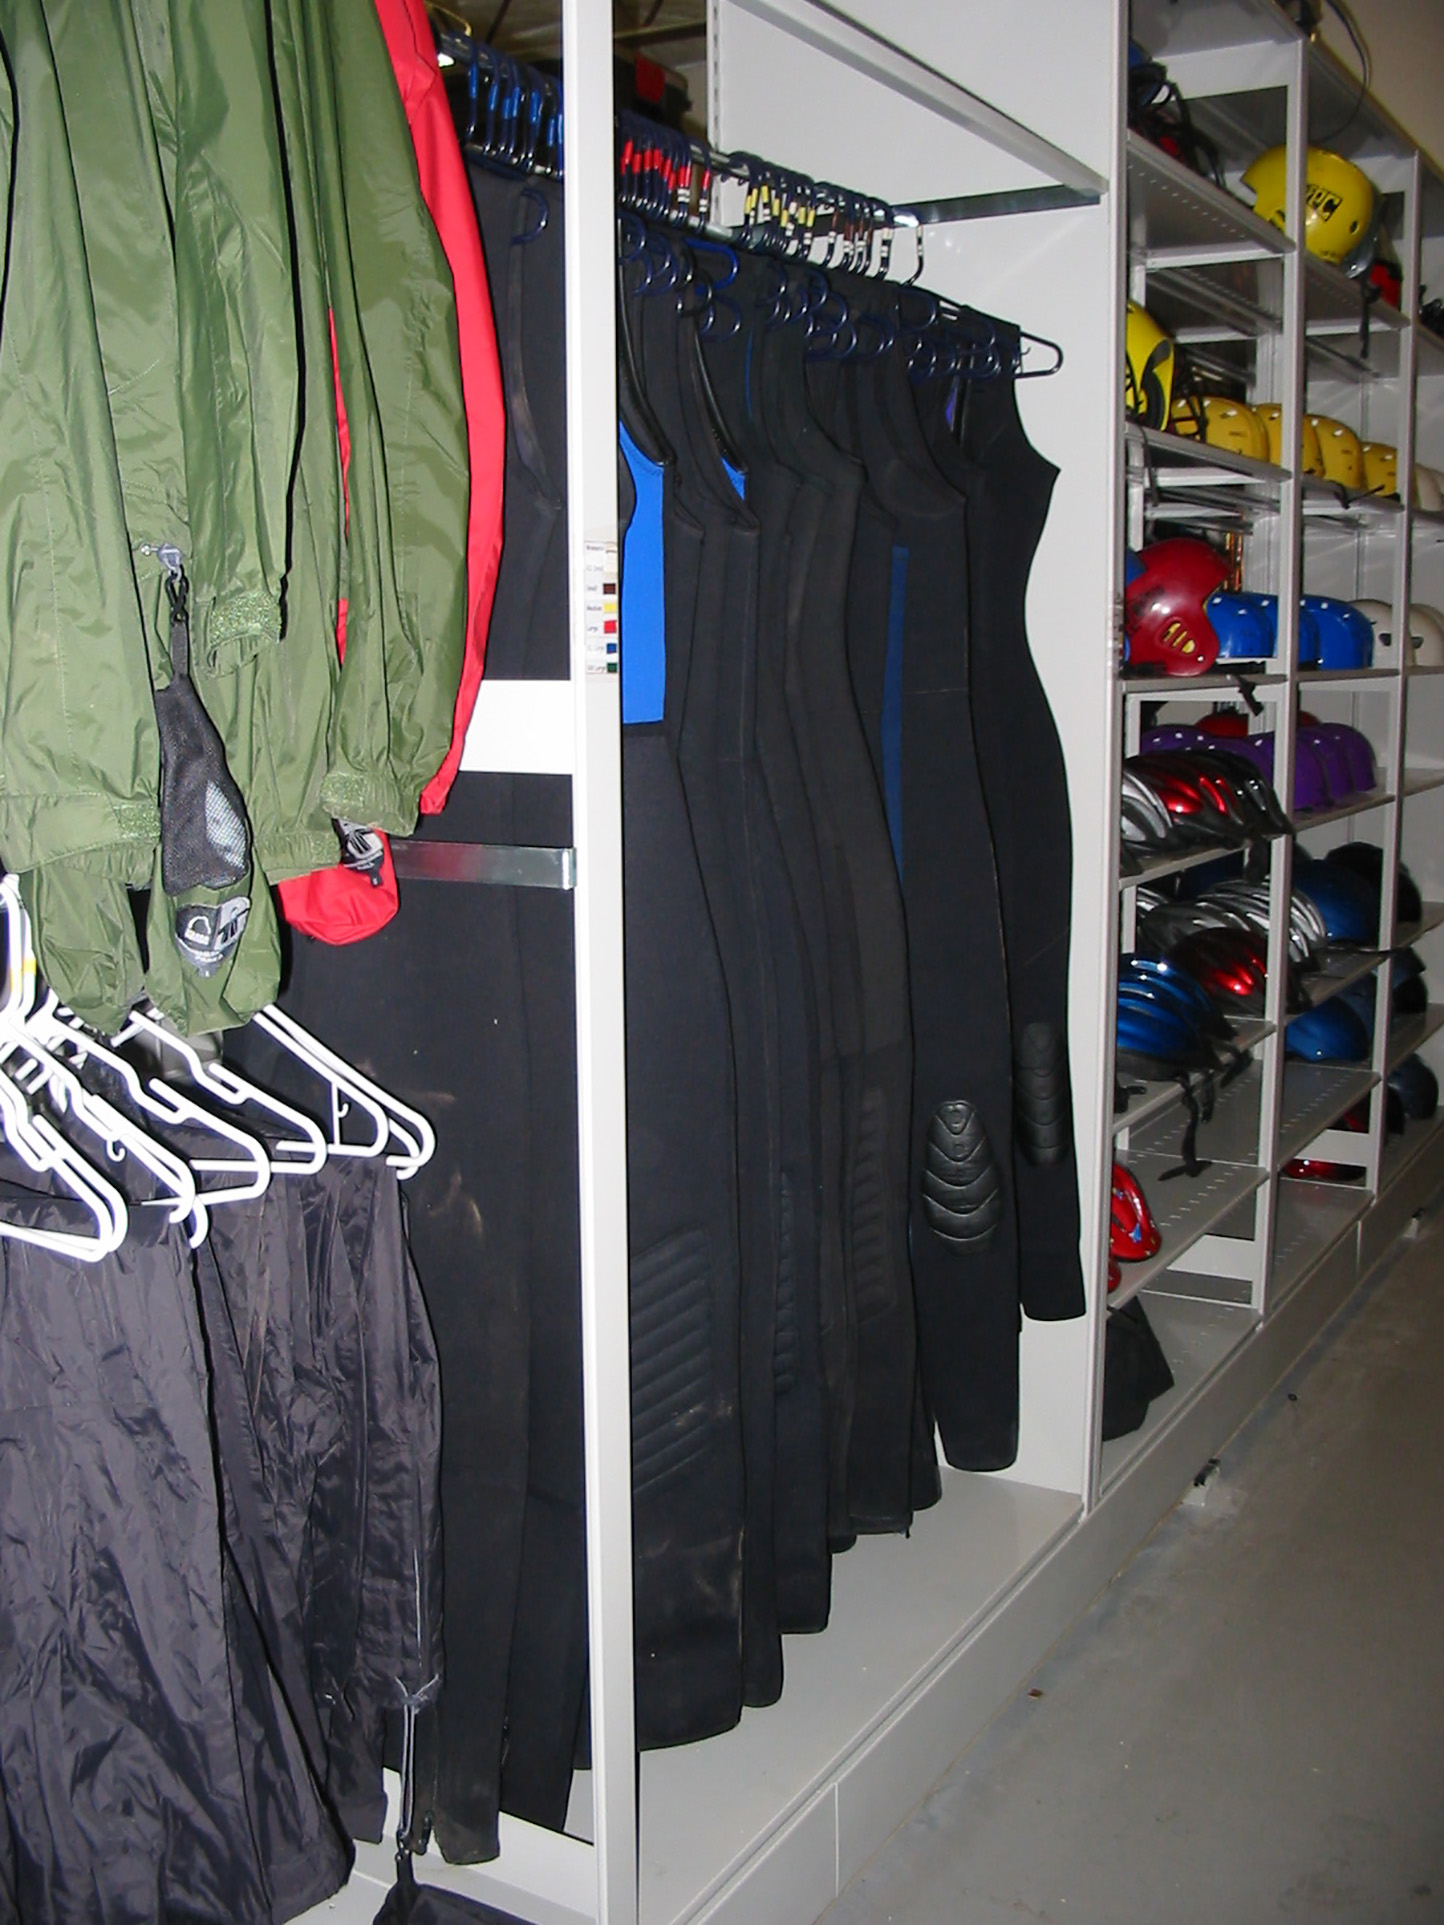 Kayaking apparel and equipment storage on hanging shelving at Brigham Young University Outdoor Resource Center